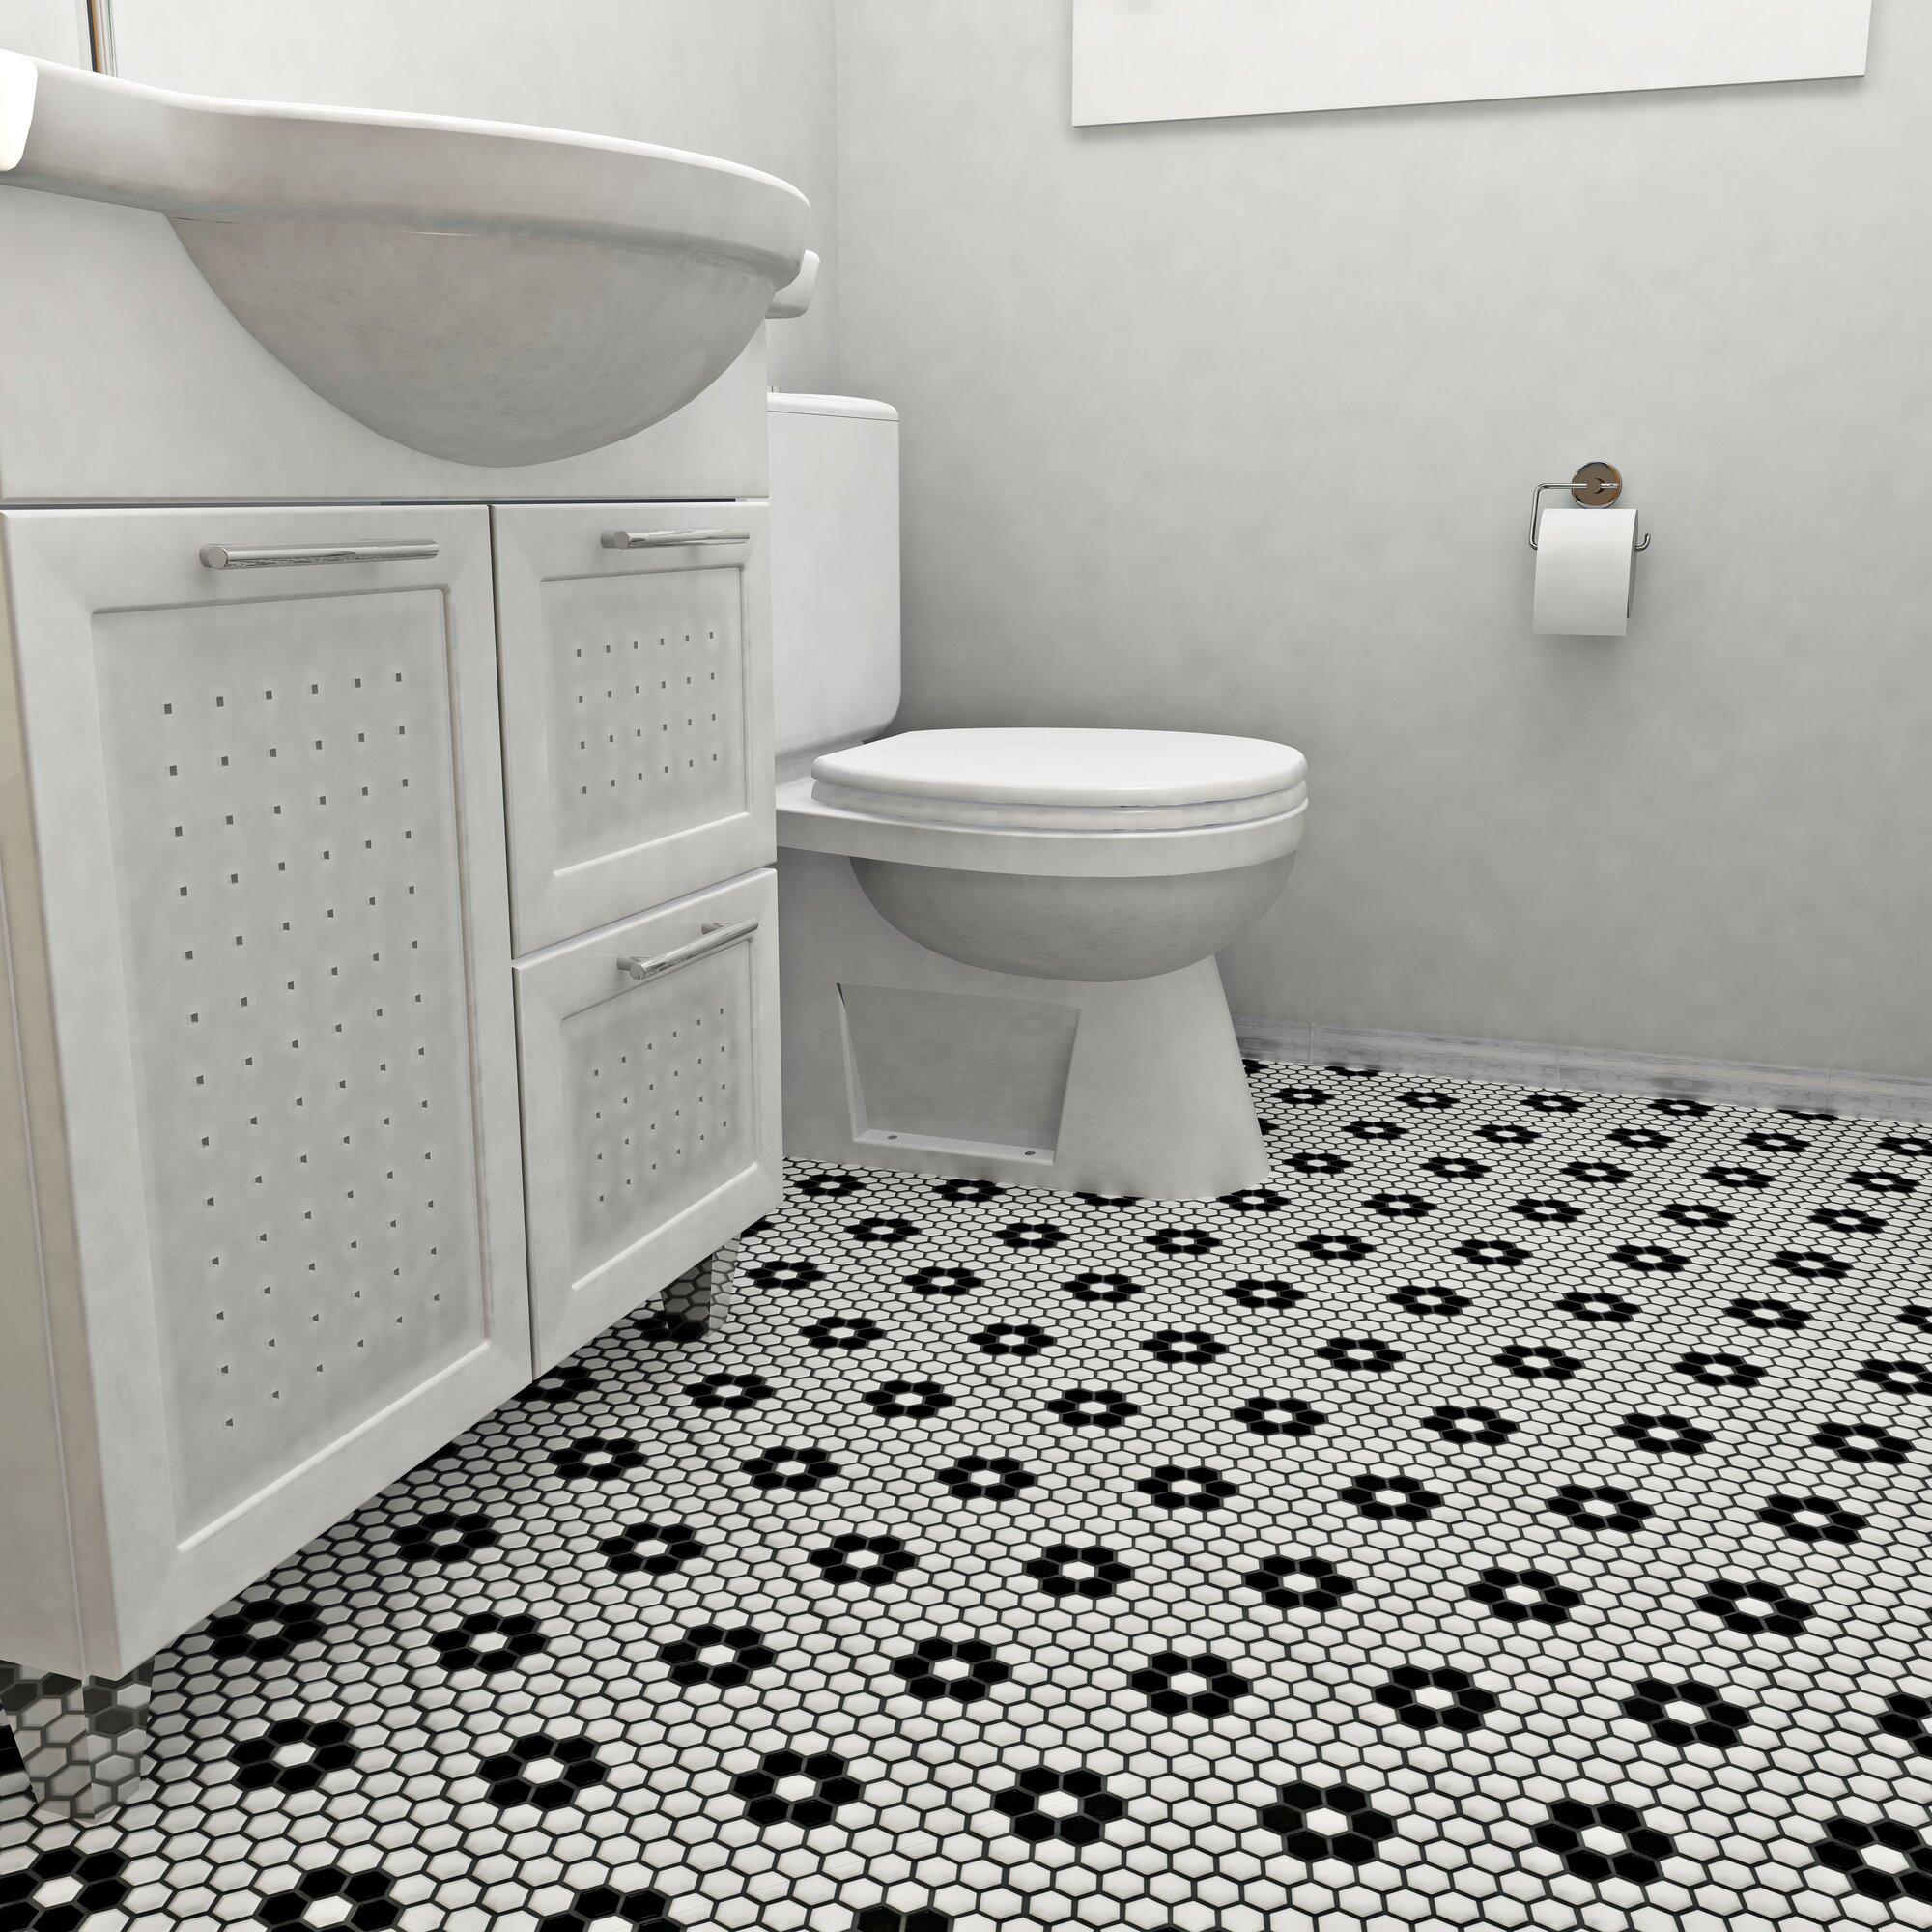 Elitetile Retro Hexagon 0 875 Quot X 0 875 Quot Porcelain Mosaic